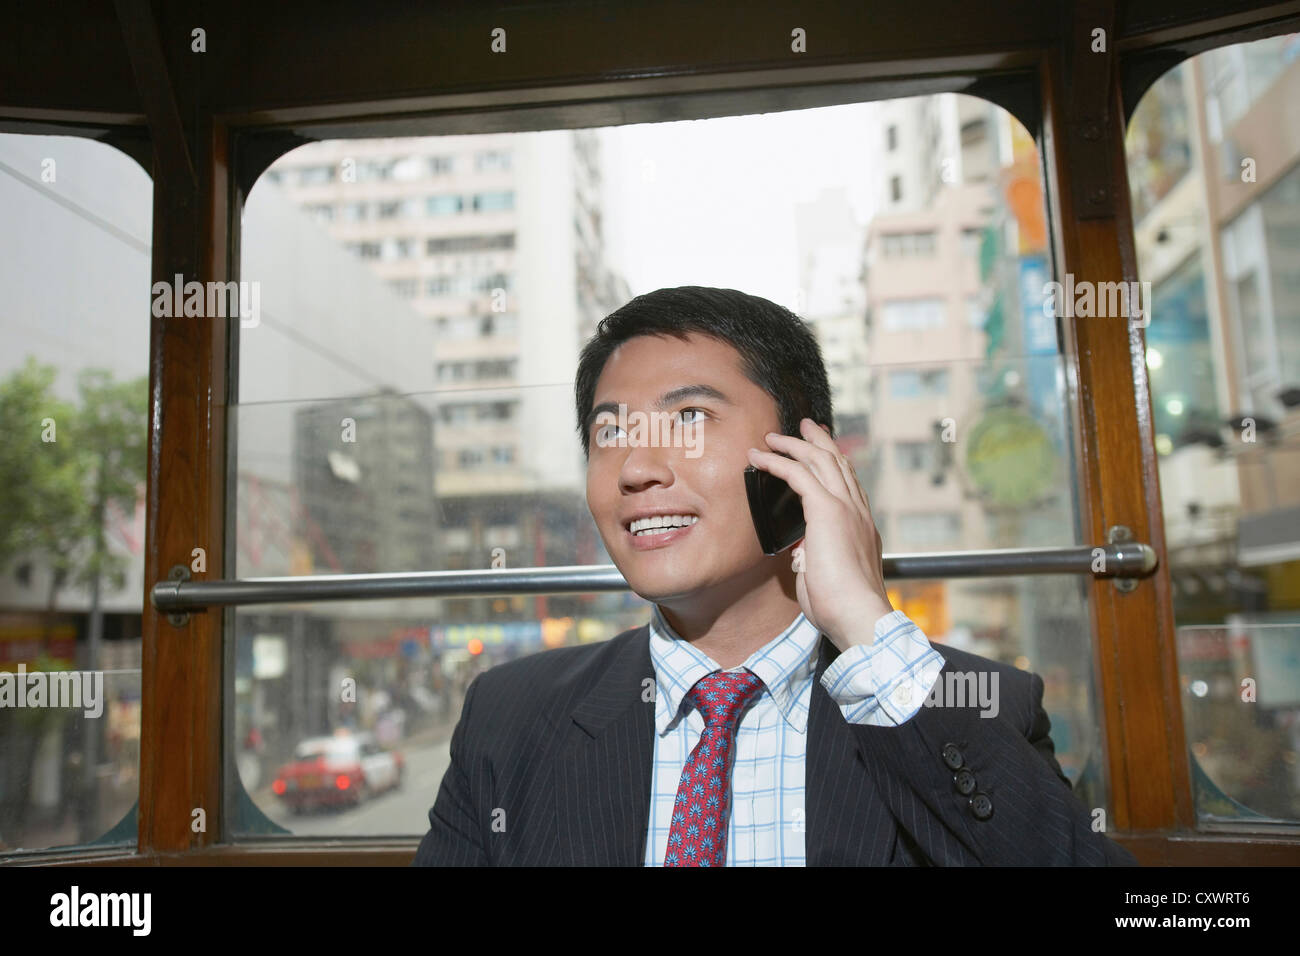 Businessman on cell phone on bus - Stock Image